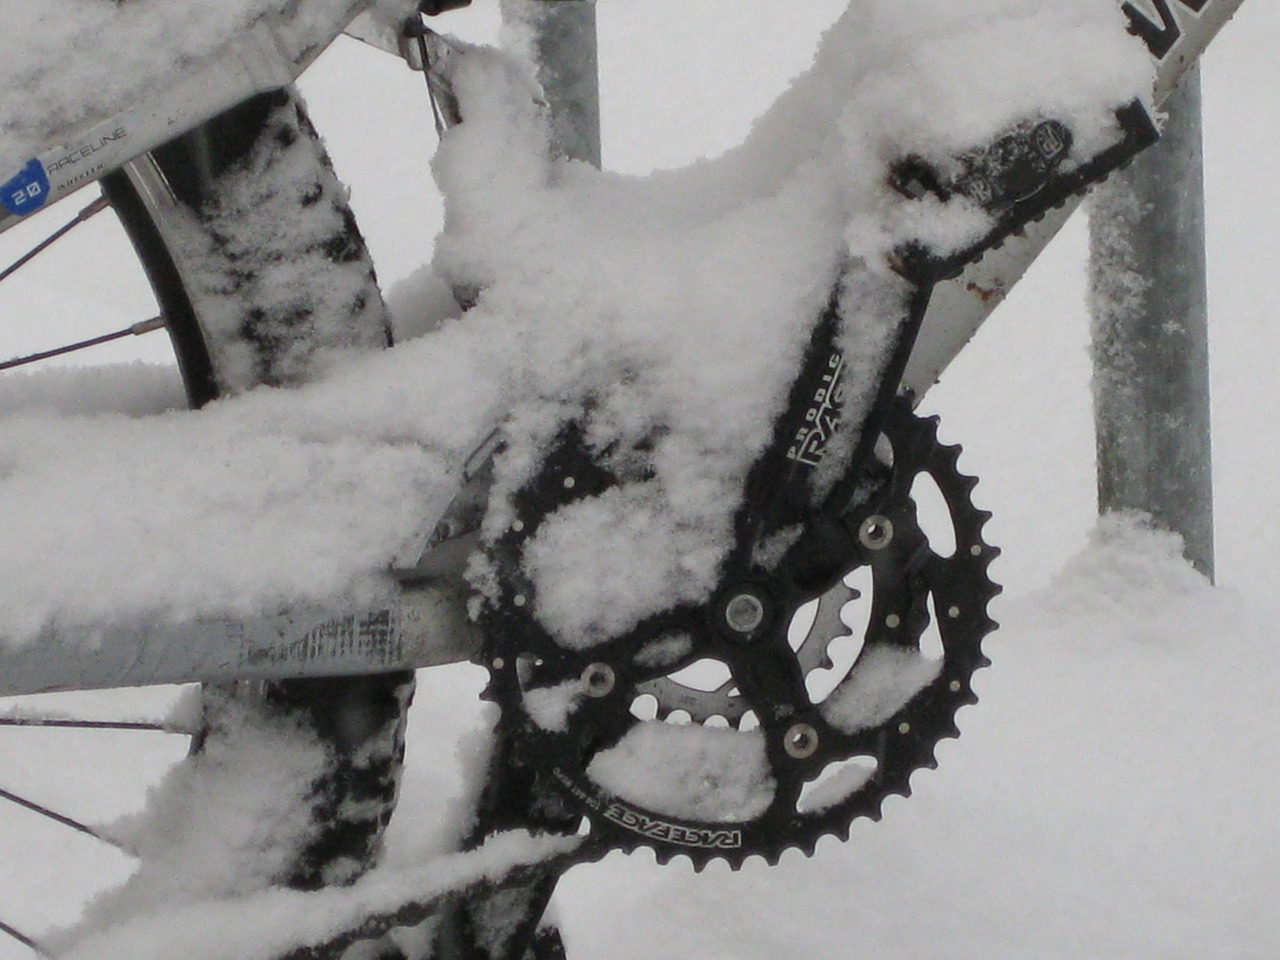 mountain bike bike snowed in free photo